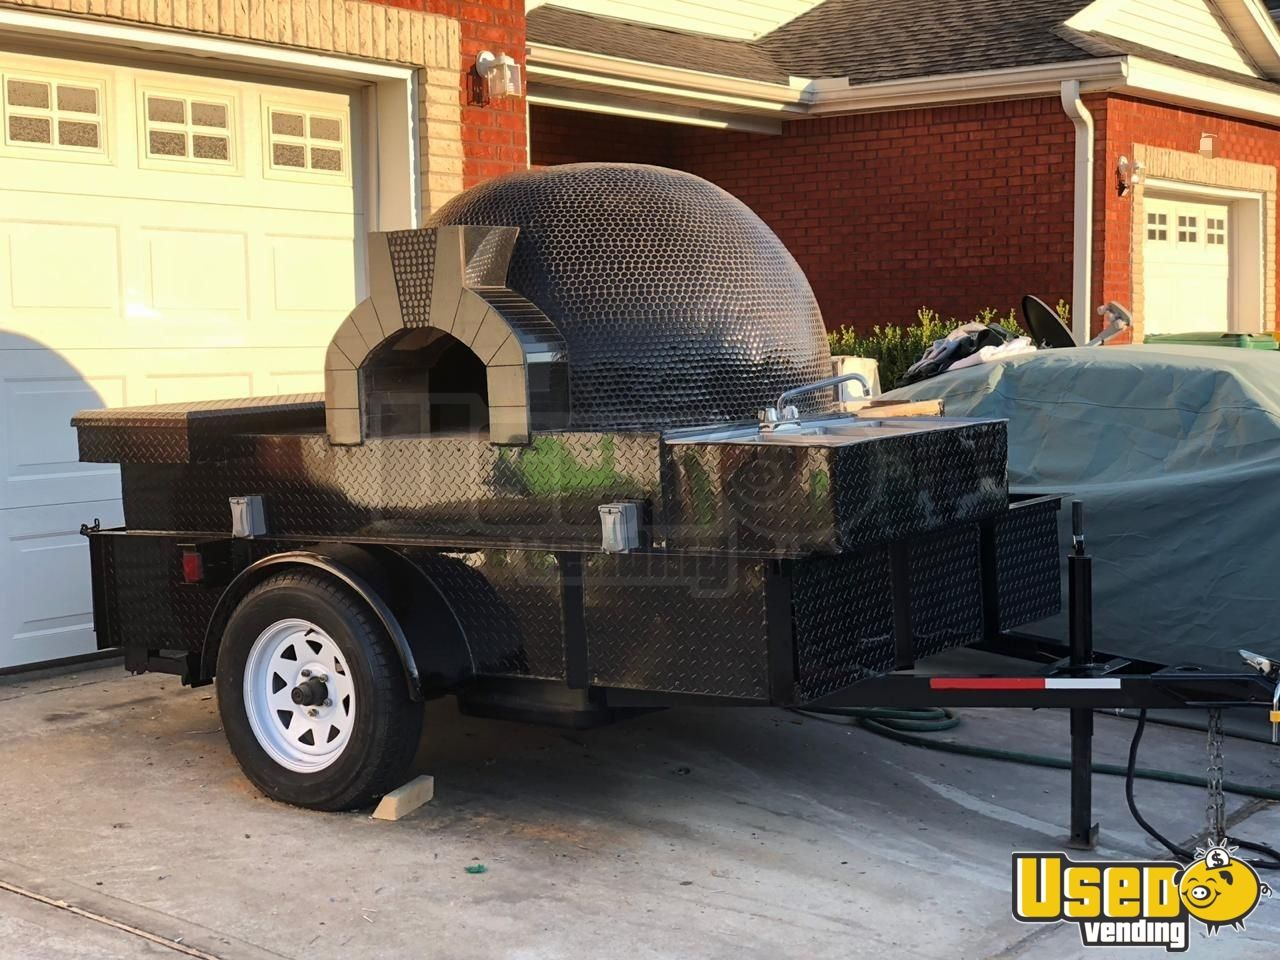 2018 Homemade Pizza Trailer Diamond Plated Aluminum Flooring Florida for Sale - 2